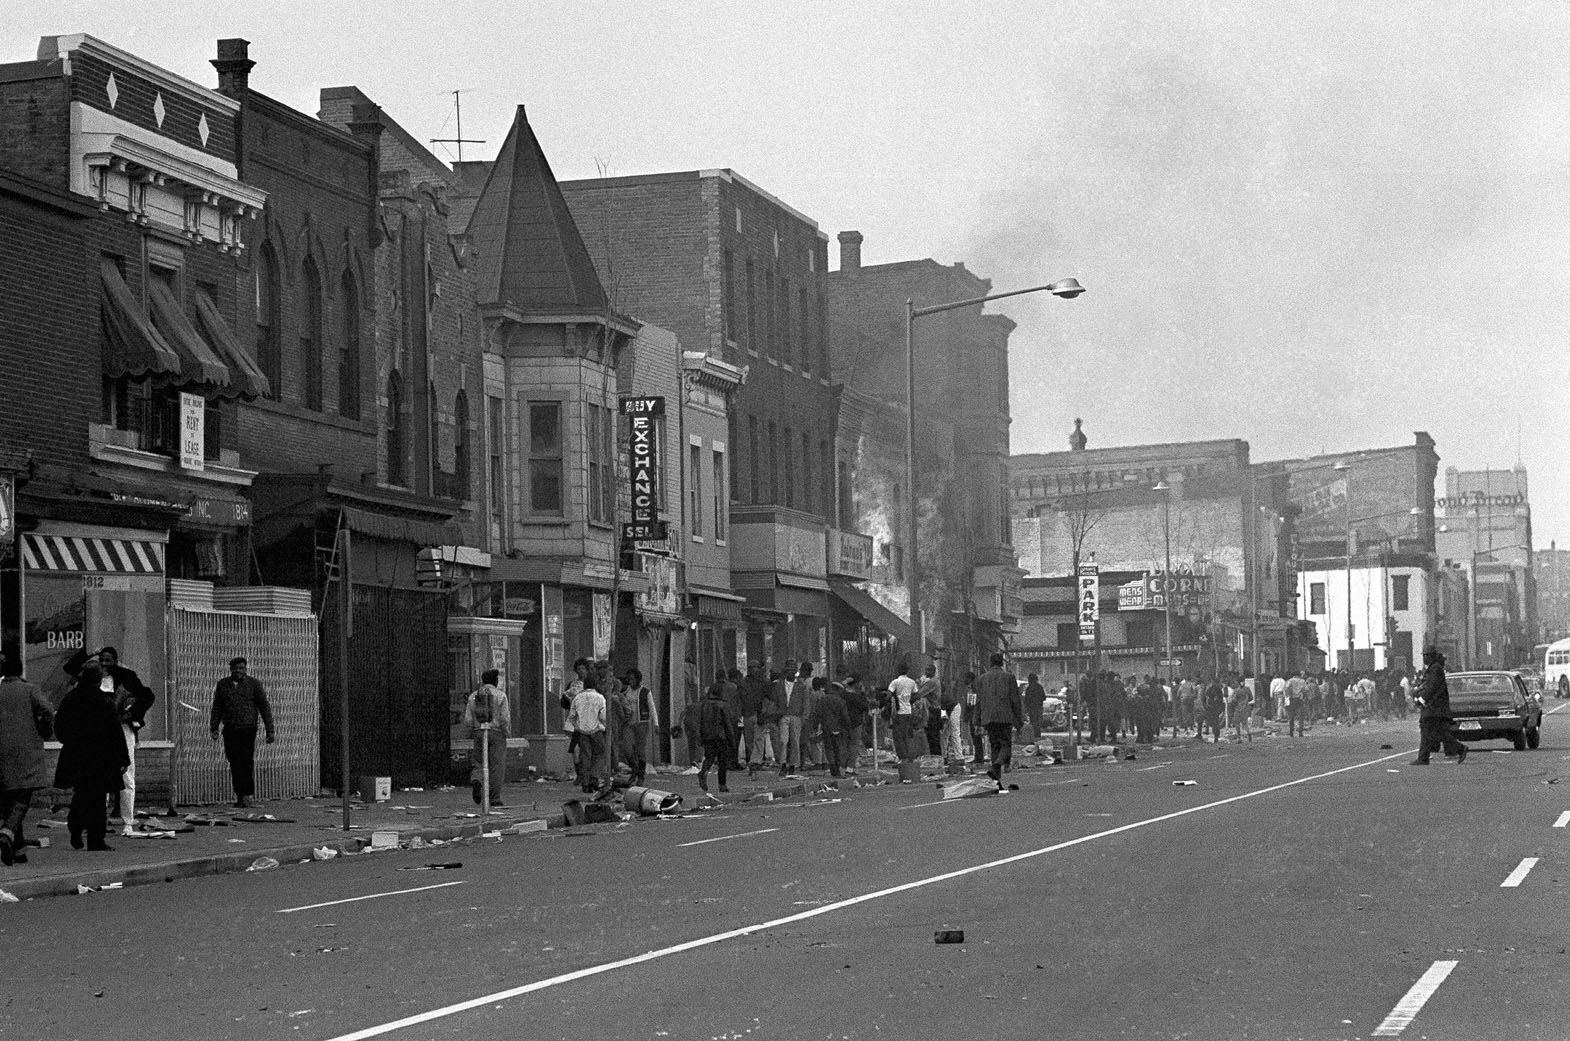 People mill around debris-covered sidewalks on Seventh Street, N.W. near U Street in Washington on April 5, 1968, in a predominantly African American business district. Smoke still rises from building in canter. (AP Photo/Bob Schutz)